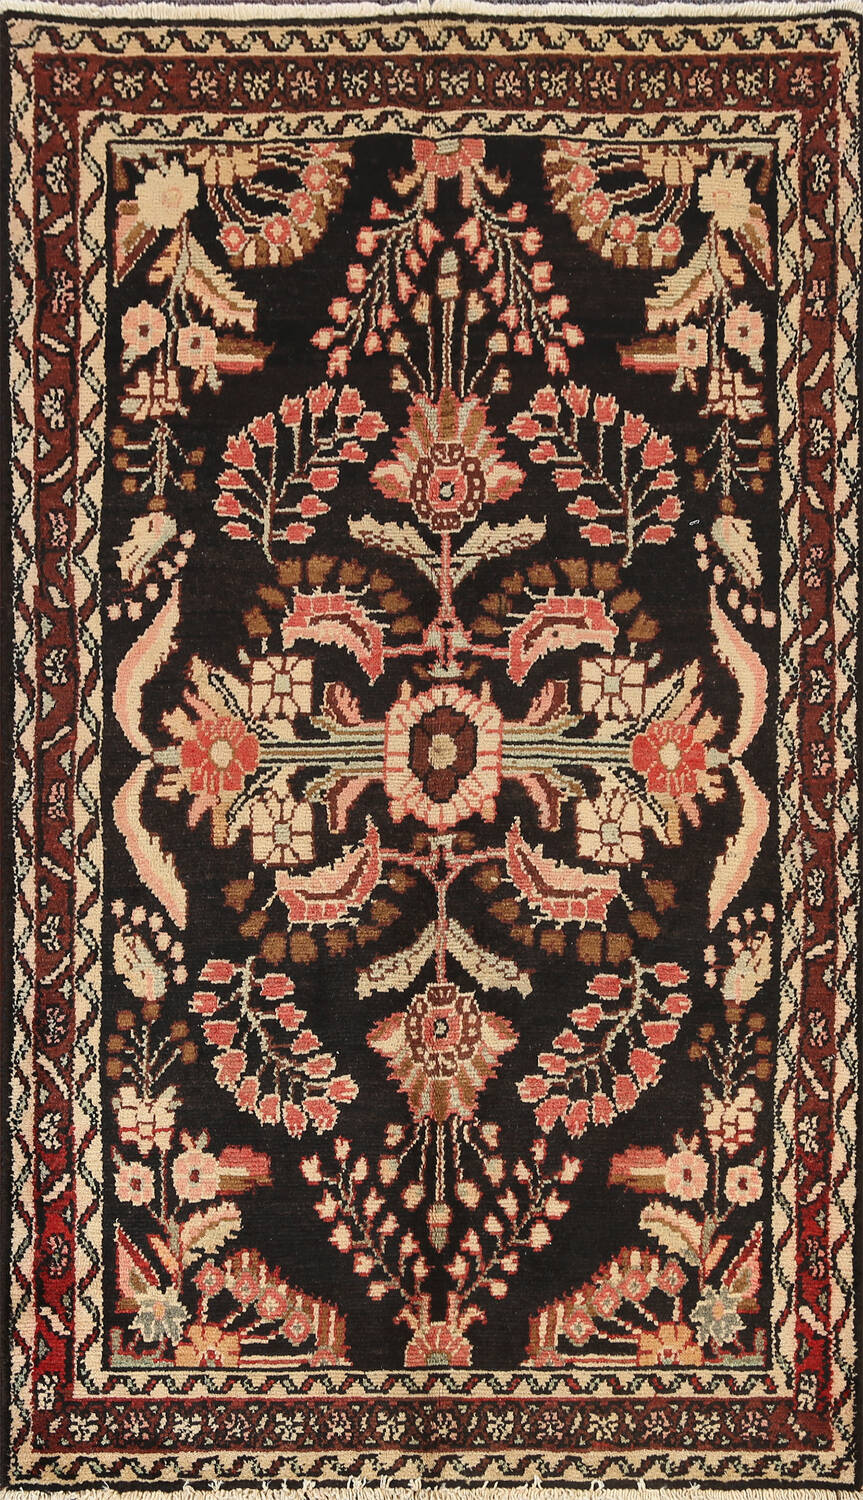 100% Vegetable Dye Floral Lilian Persian Area Rug 4x7 image 1